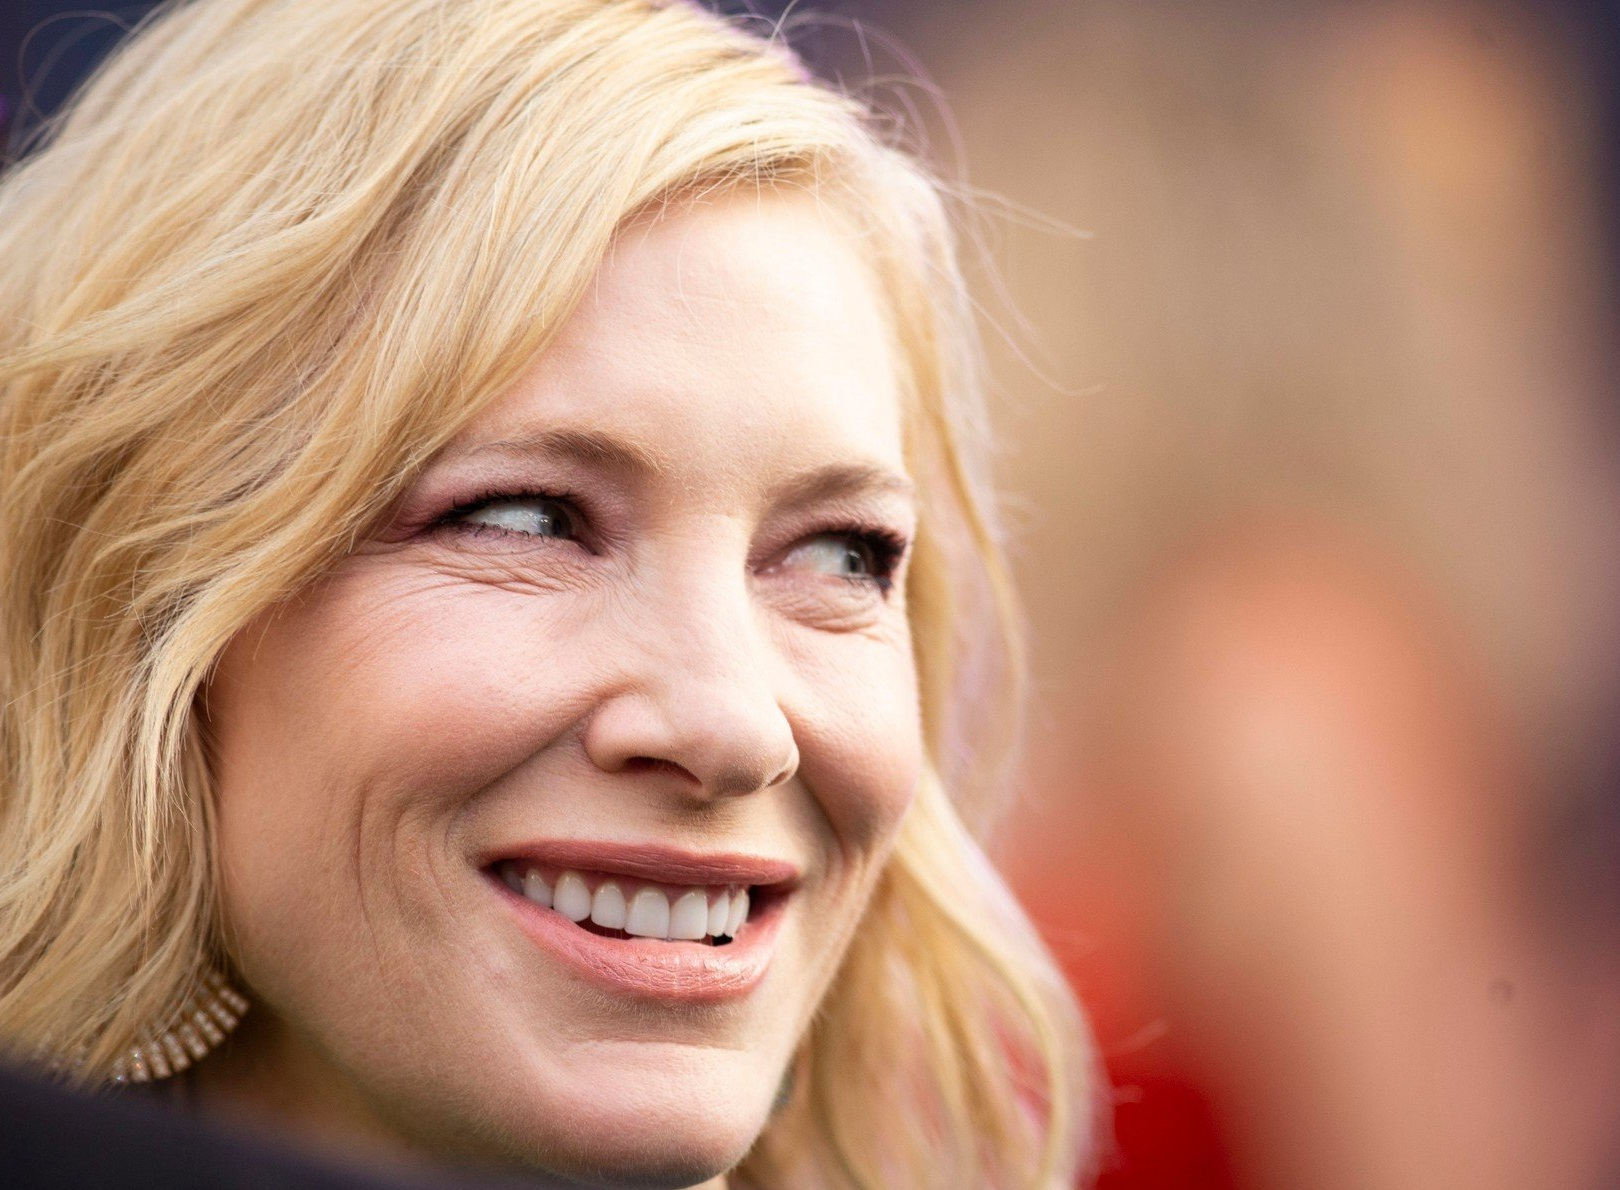 Cate Blanchett arriving at the world premiere of The House with a Clock in Its Walls at Westfield in White City, London., Image: 385431174, License: Rights-managed, Restrictions: , Model Release: no, Credit line: Profimedia, Press Association